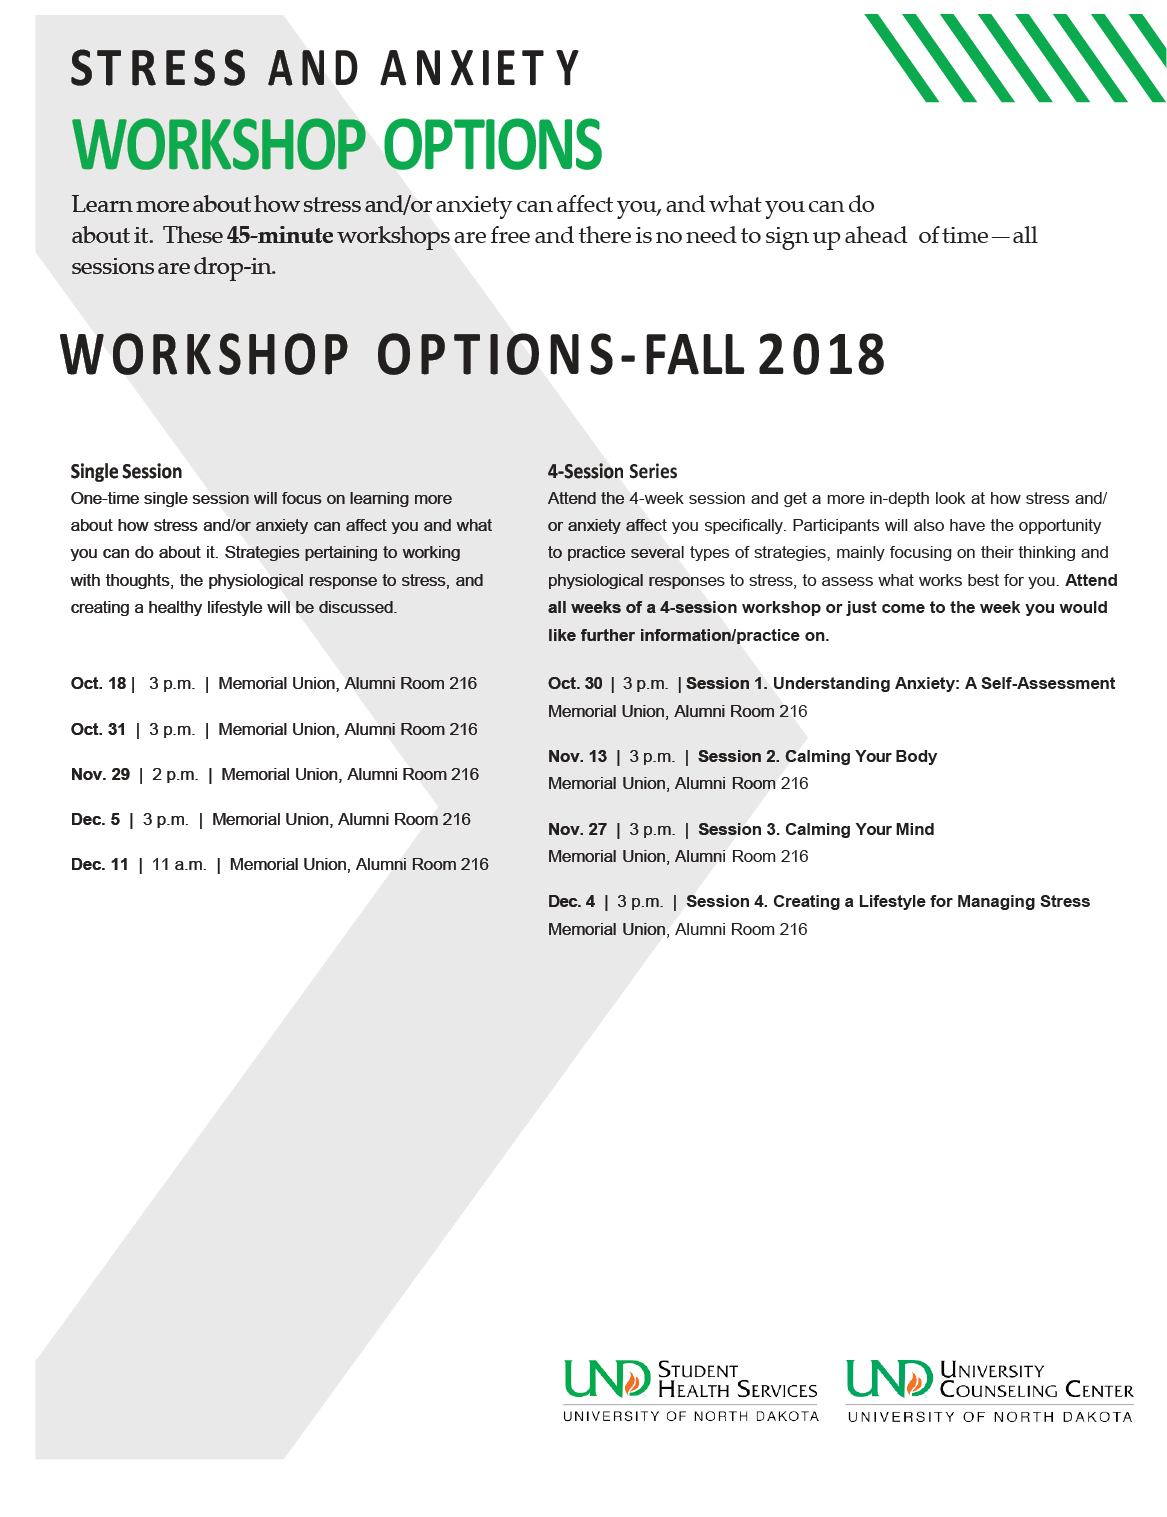 STRESS AND ANXIETY WORKSHOP OPTIONS Learn more about how stress and/or anxiety can affect you, and what you can do aboutit. These 45-minute workshops are free and there is no need to sign up ahead of time—all sessions are drop-in. WORKSHOP OPTIONS-FALL2018 Single Session One-time single session will focus on learning more about how stress and/or anxiety can affect you and what you can do about it. Strategies pertaining to working with thoughts, the physiological response to stress, and creating a healthy lifestyle will be discussed. Oct. 18 | 3 p.m. | Memorial Union, Alumni Room 216 Oct. 31 | 3 p.m. | Memorial Union, Alumni Room 216 Nov. 29 | 2 p.m. | Memorial Union, Alumni Room 216 Dec. 5 | 3 p.m. | Memorial Union, Alumni Room 216 Dec. 11 | 11 a.m. | Memorial Union, Alumni Room 216 4-Session Series Attend the 4-week session and get a more in-depth look at how stress and/ or anxiety affect you specifically. Participants will also have the opportunity to practice several types of strategies, mainly focusing on their thinking and physiological responses to stress, to assess what works best for you. Attend all weeks of a 4-session workshop or just come to the week you would like further information/practice on. Oct. 30 | 3 p.m. | Session 1. Understanding Anxiety: A Self-Assessment Memorial Union, Alumni Room 216 Nov. 13 | 3 p.m. | Session 2. Calming Your Body Memorial Union, Alumni Room 216 Nov. 27 | 3 p.m. | Session 3. Calming Your Mind Memorial Union, Alumni Room 216 Dec. 4 | 3 p.m. | Session 4. Creating a Lifestyle for Managing Stress Memorial Union, Alumni Room 216